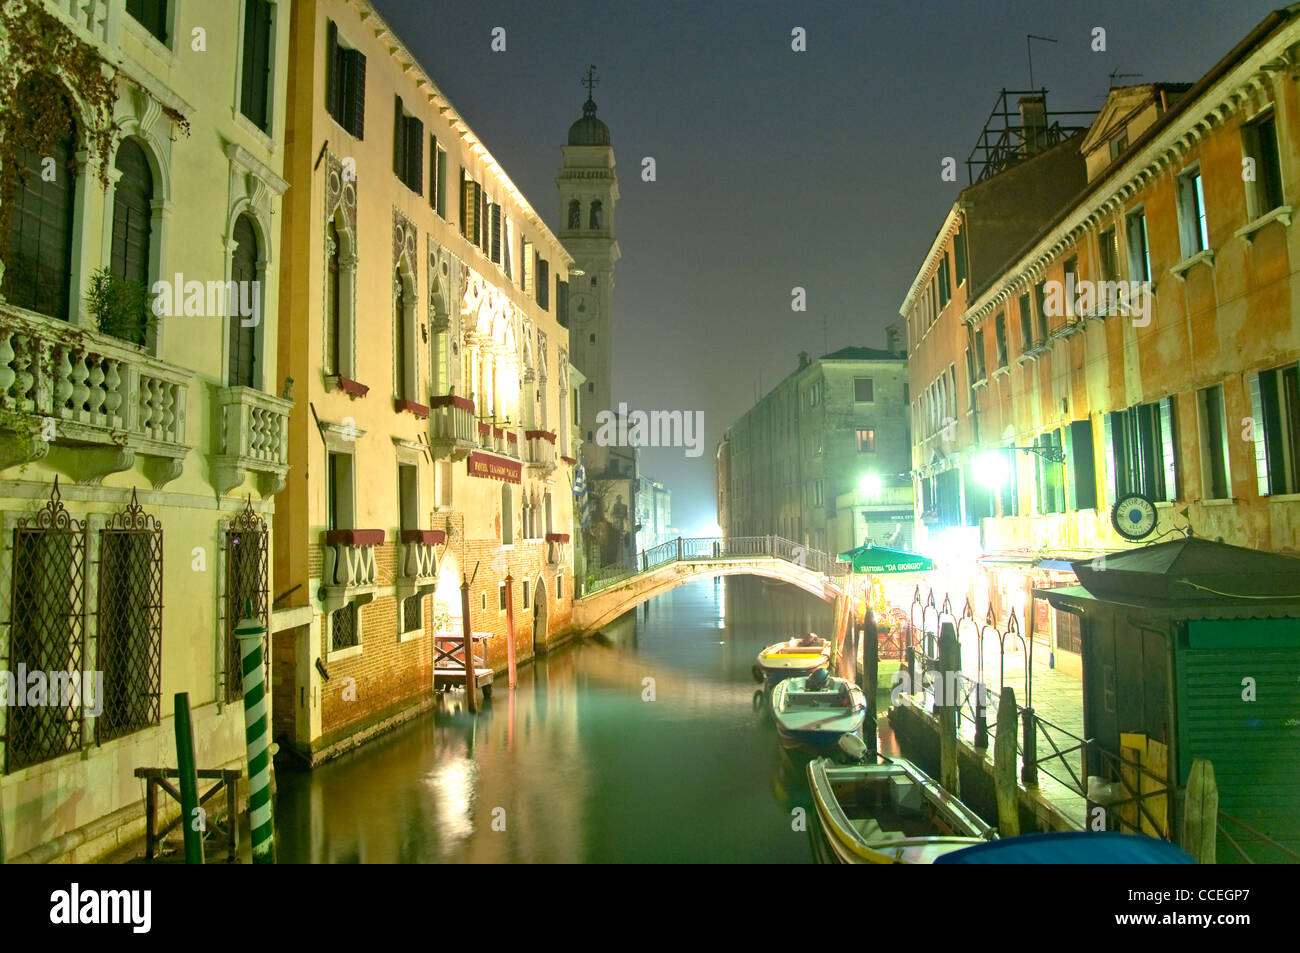 Canals at night, Venice, Italy - Stock Image